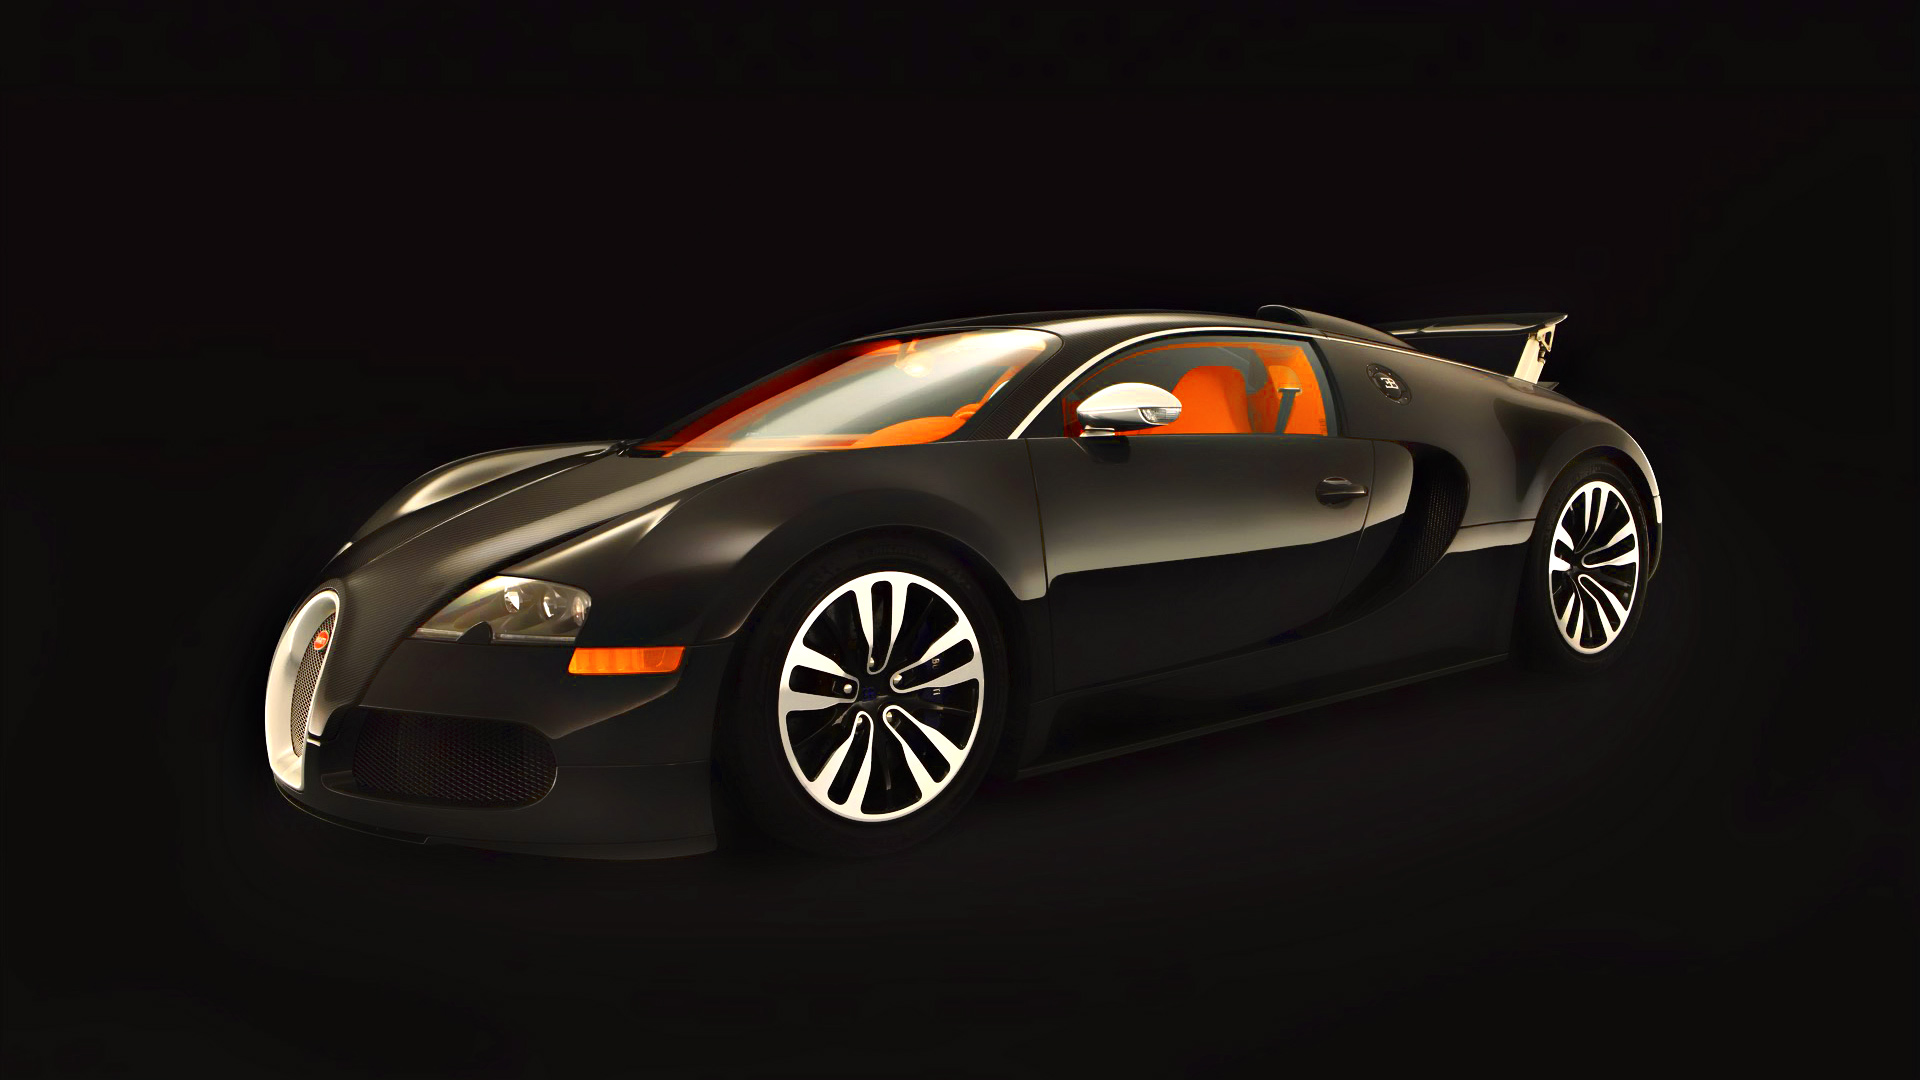 bugatti veyron wallpapers pictures images. Black Bedroom Furniture Sets. Home Design Ideas